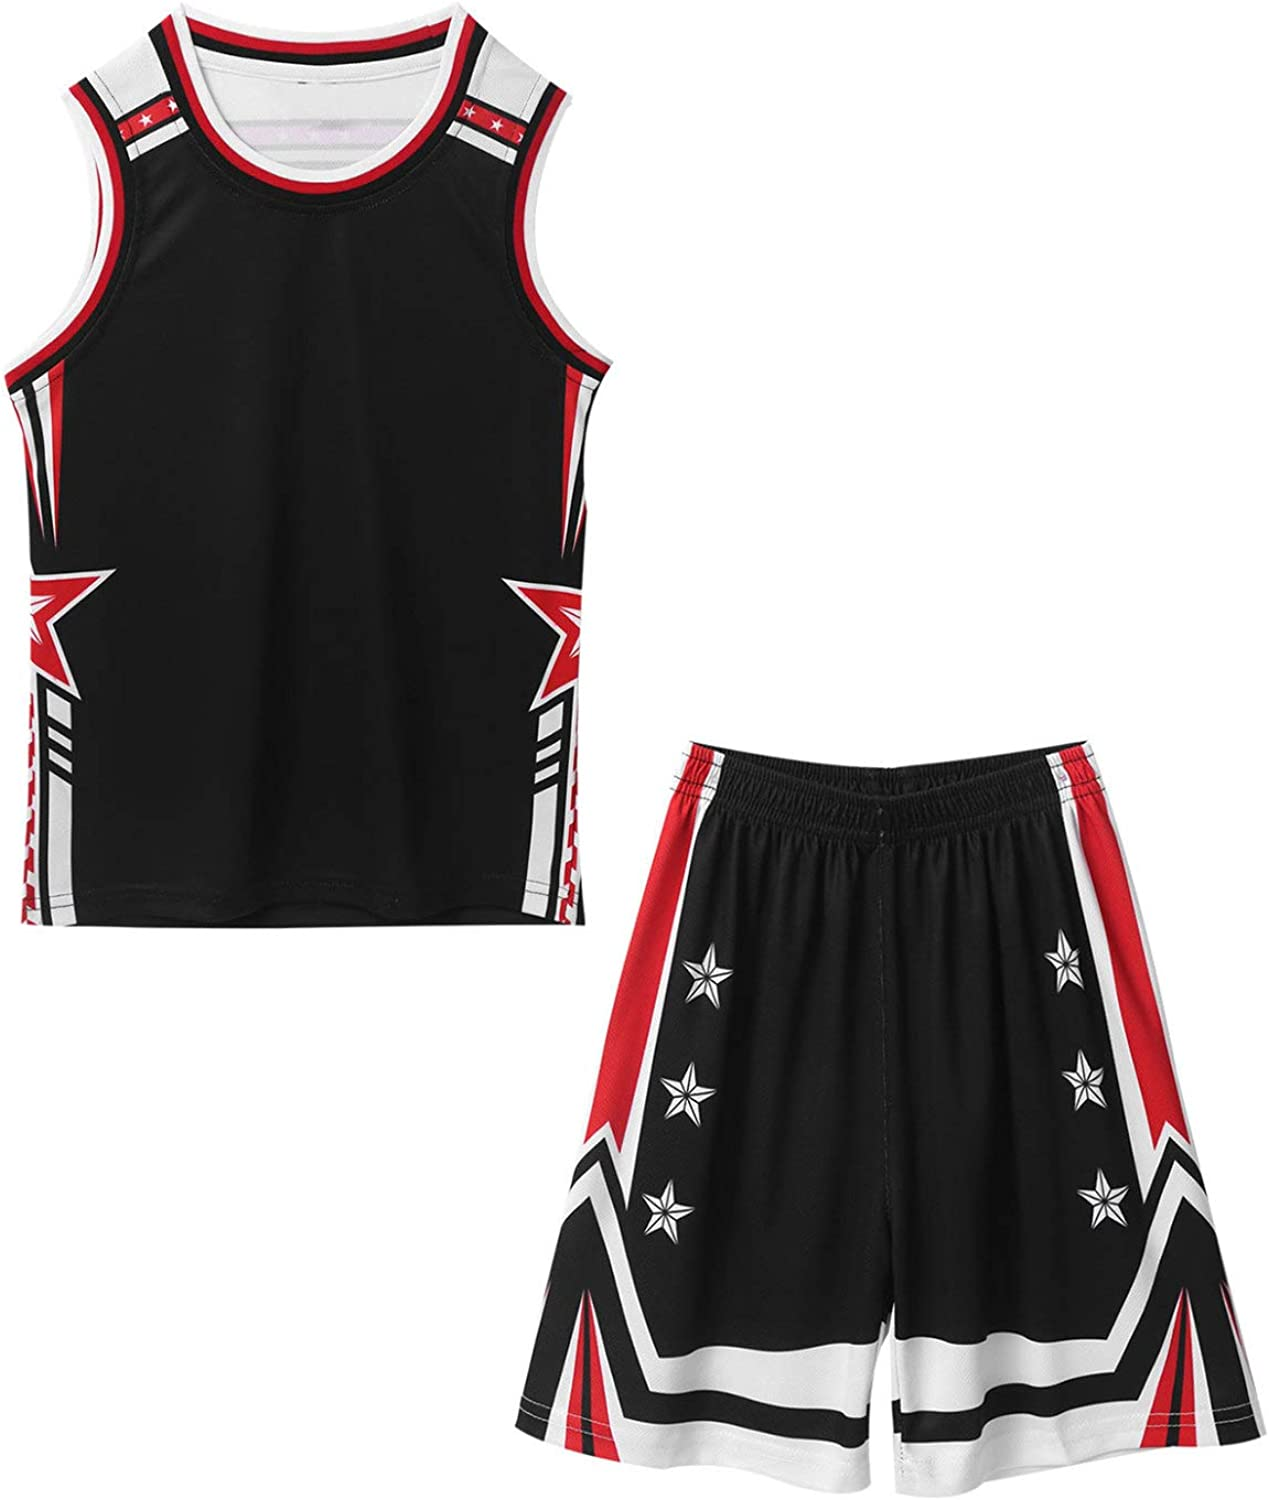 dPois Kids Boys Sleeveless Active Sports Top Vest with Shorts Sets for Basketball Suit Sportswear Workout Fitness Tracksuit